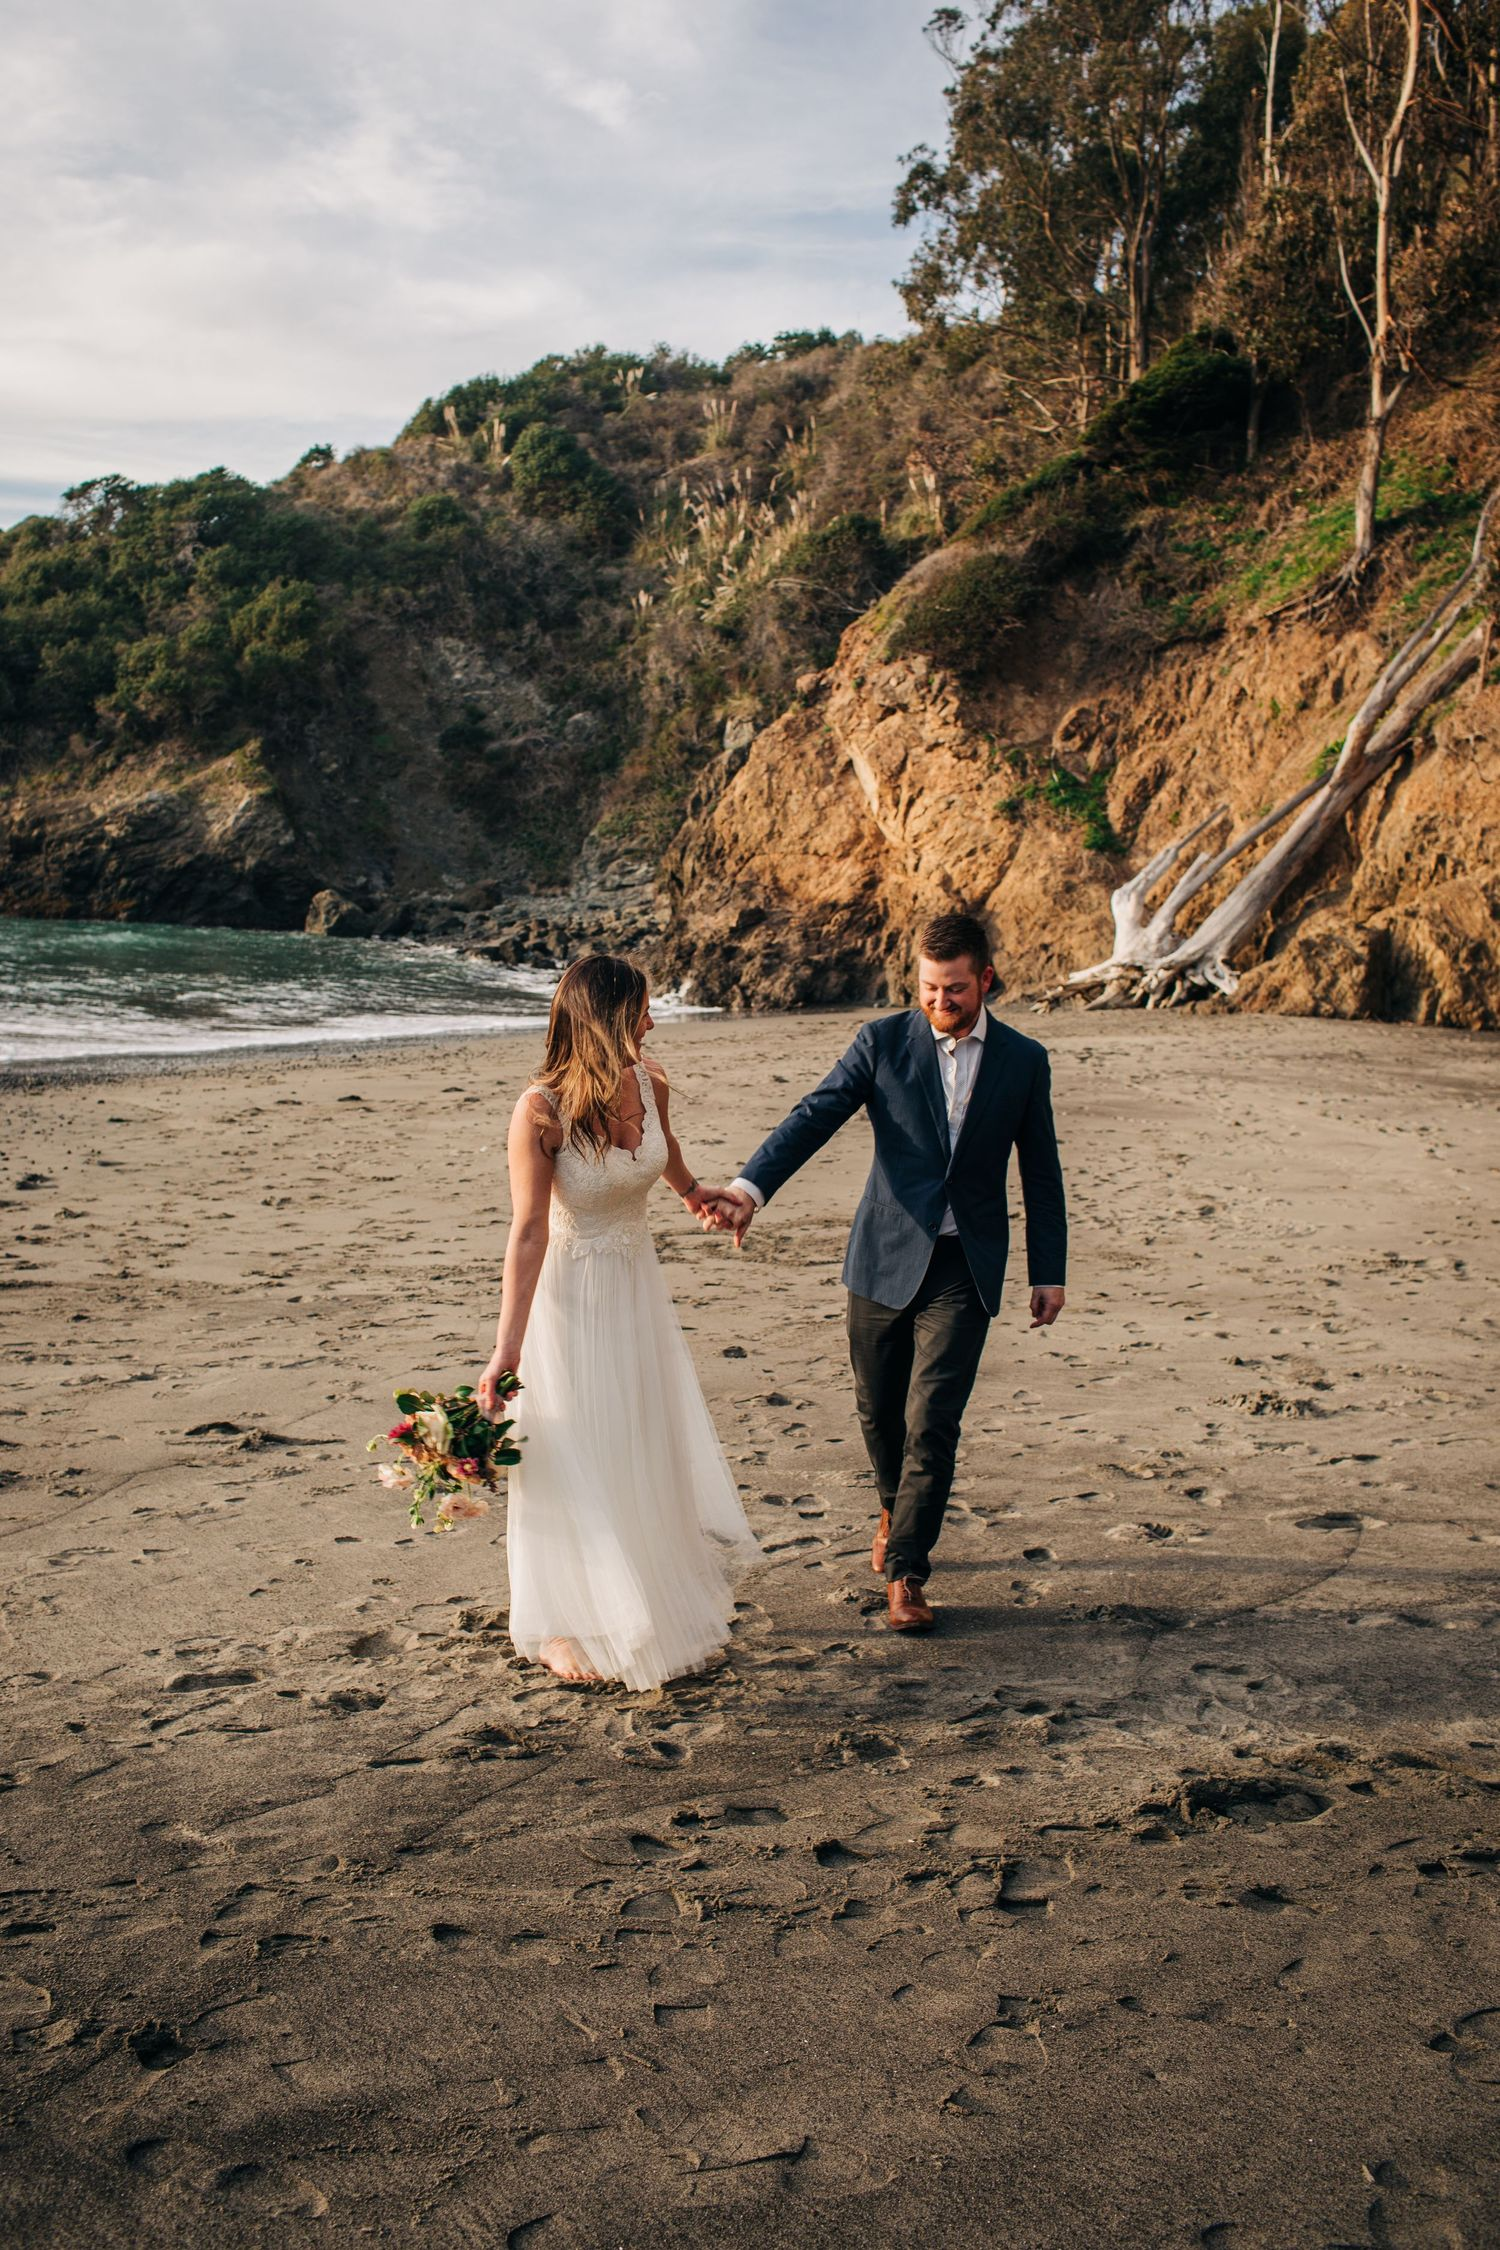 A newly married couple walks together on their elopement wedding day in Northern California.